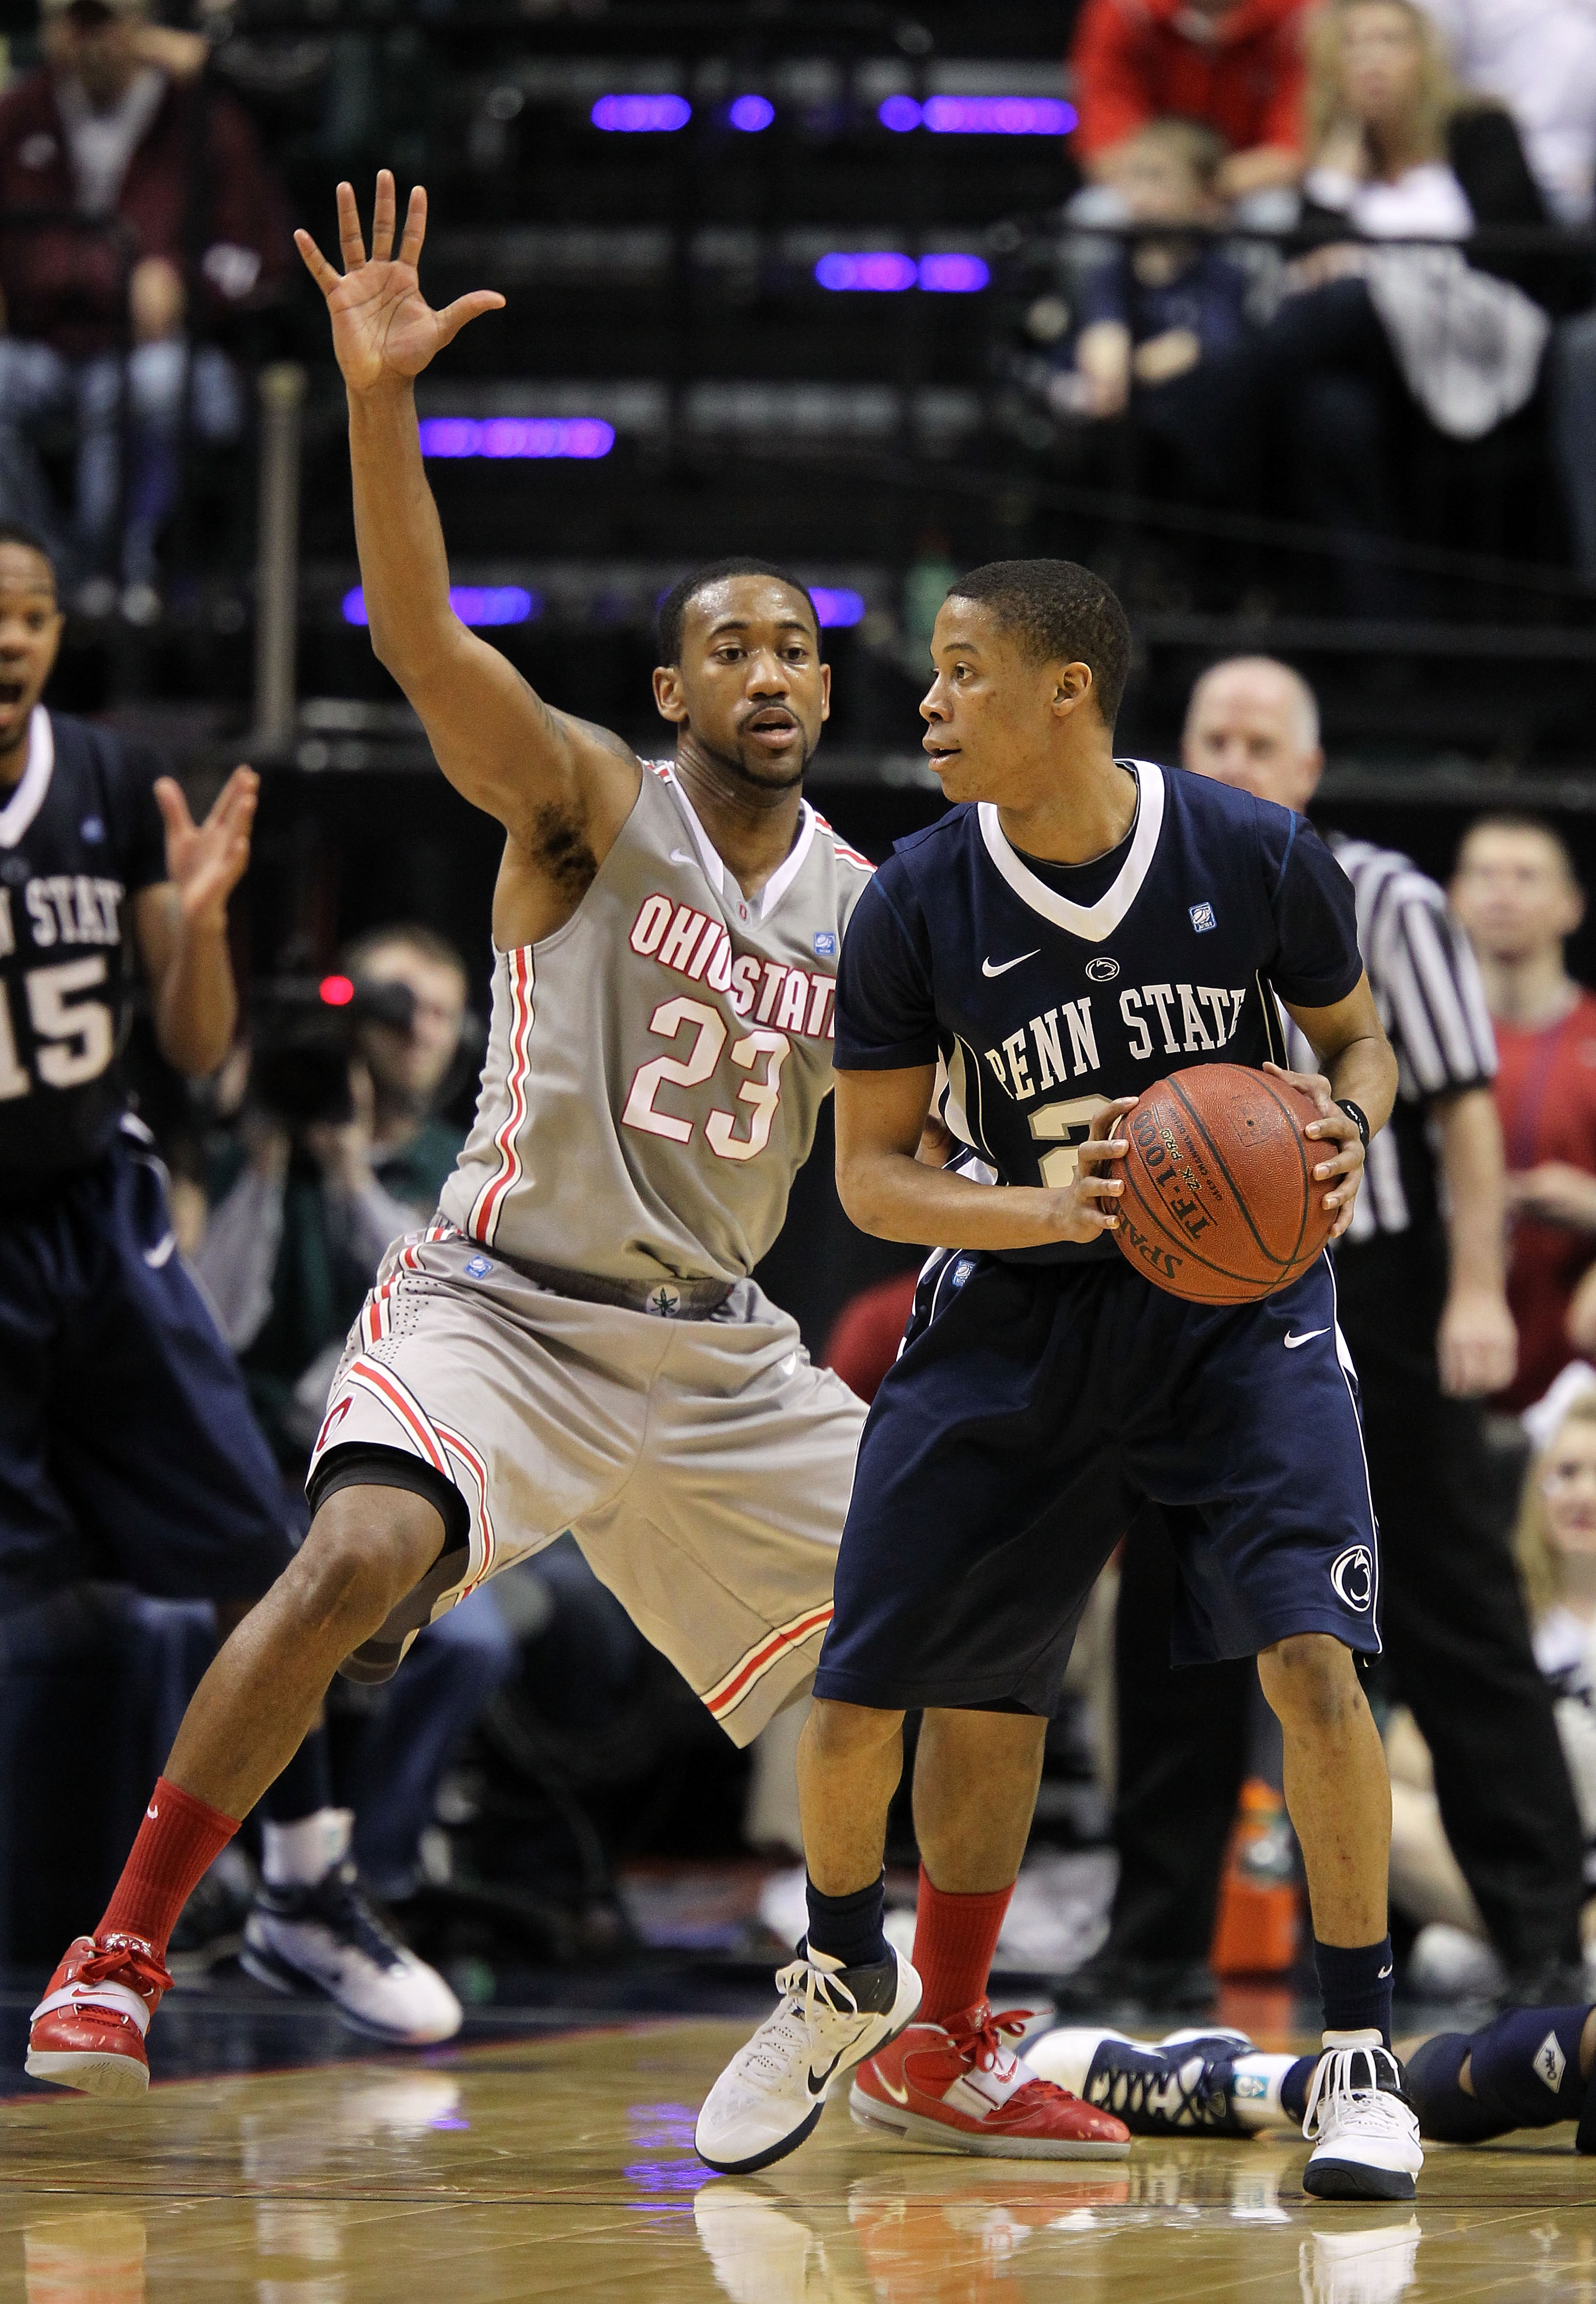 INDIANAPOLIS, IN - MARCH 13:  Tim Frazier #23 of the Penn State Nittany Lions looks to pass the ball against David Lighty #23 of the Ohio State Buckeyes during the championship game of the 2011 Big Ten Men's Basketball Tournament at Conseco Fieldhouse on